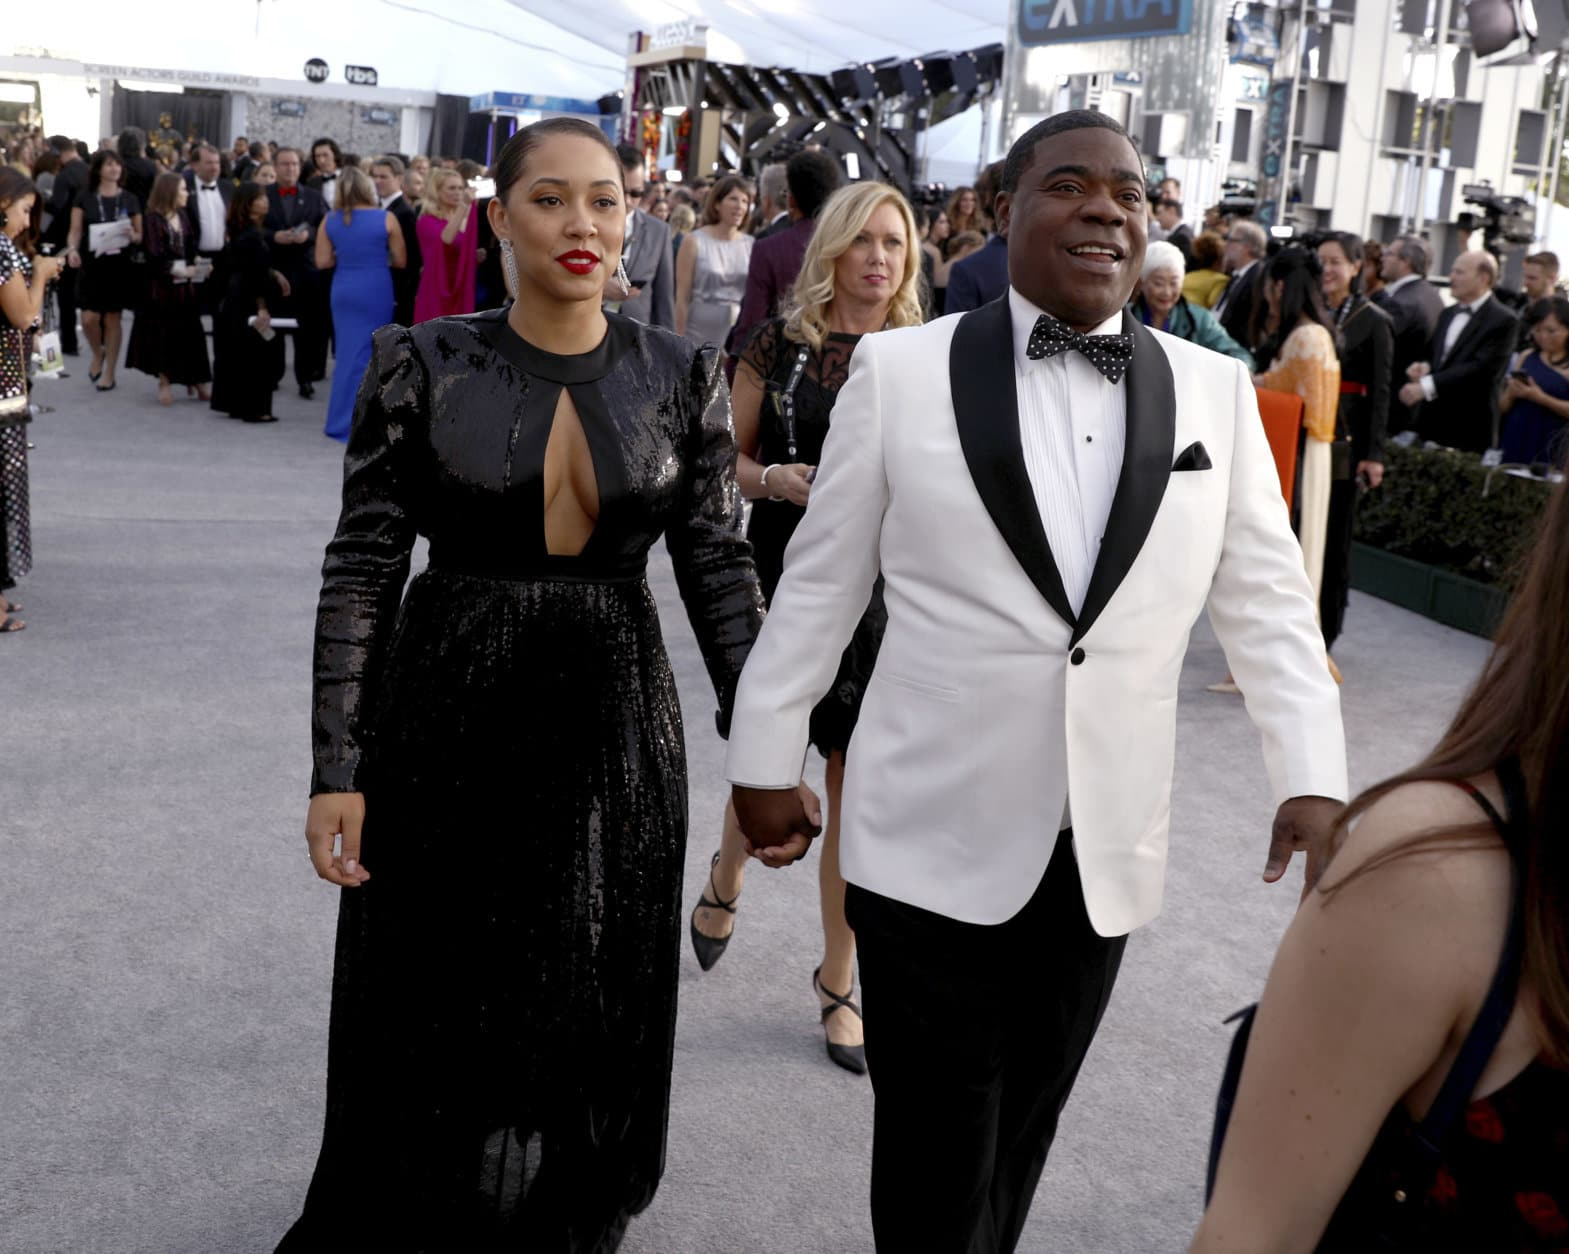 Megan Wollover, left, and Tracy Morgan arrive at the 25th annual Screen Actors Guild Awards at the Shrine Auditorium & Expo Hall on Sunday, Jan. 27, 2019, in Los Angeles. (Photo by Matt Sayles/Invision/AP)